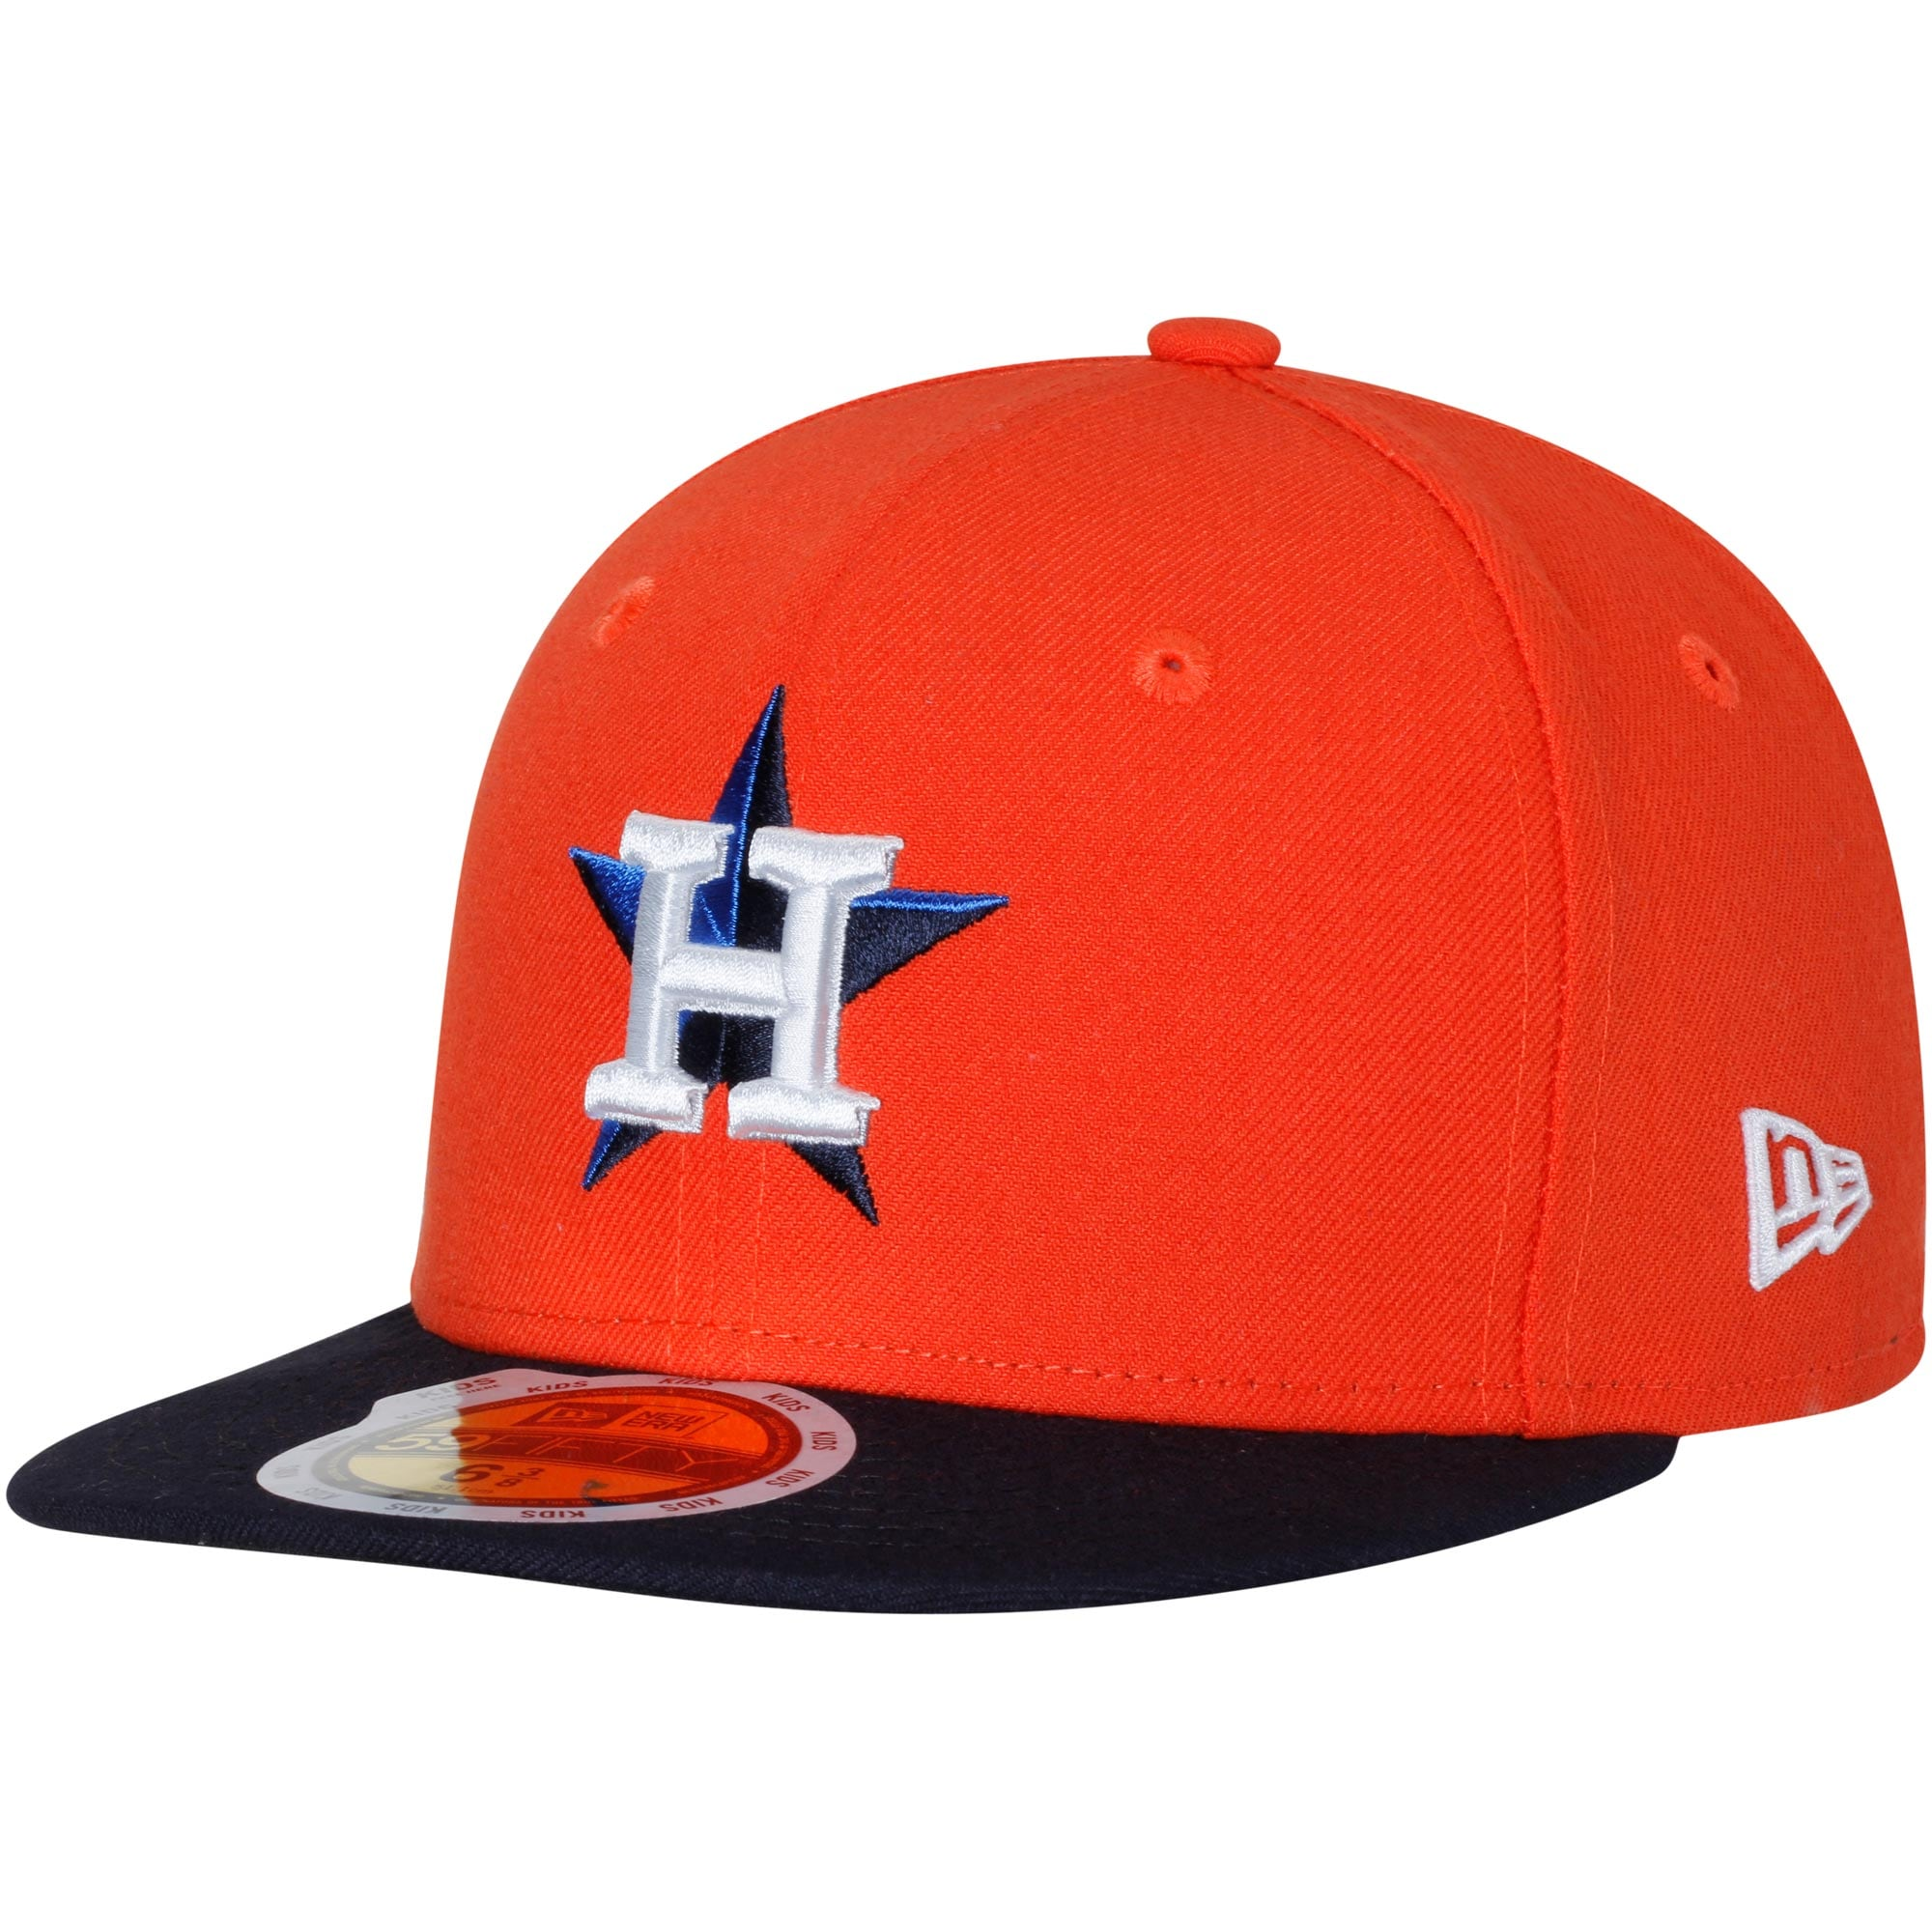 Houston Astros New Era Youth Authentic Collection On-Field Alternate 59FIFTY Fitted Hat - Orange/Navy